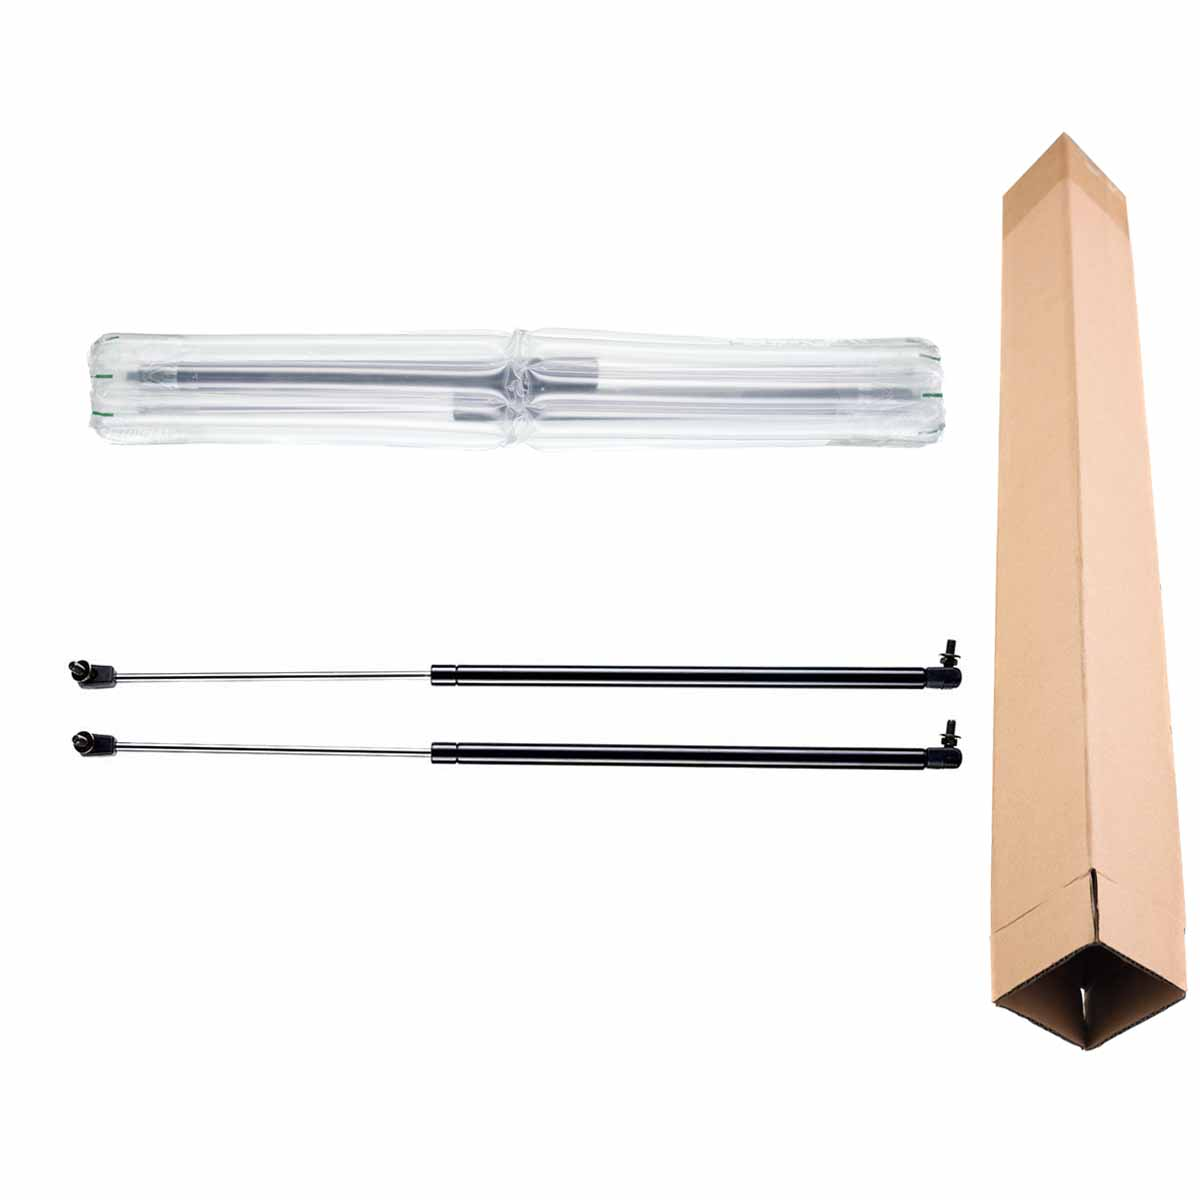 Set of 2 Rear Trunk Tailgate Lift Supports Shock Gas Struts for Toyota Celica 1982-1985 Hatchback Without Rear Wiper 4702(China (Mainland))